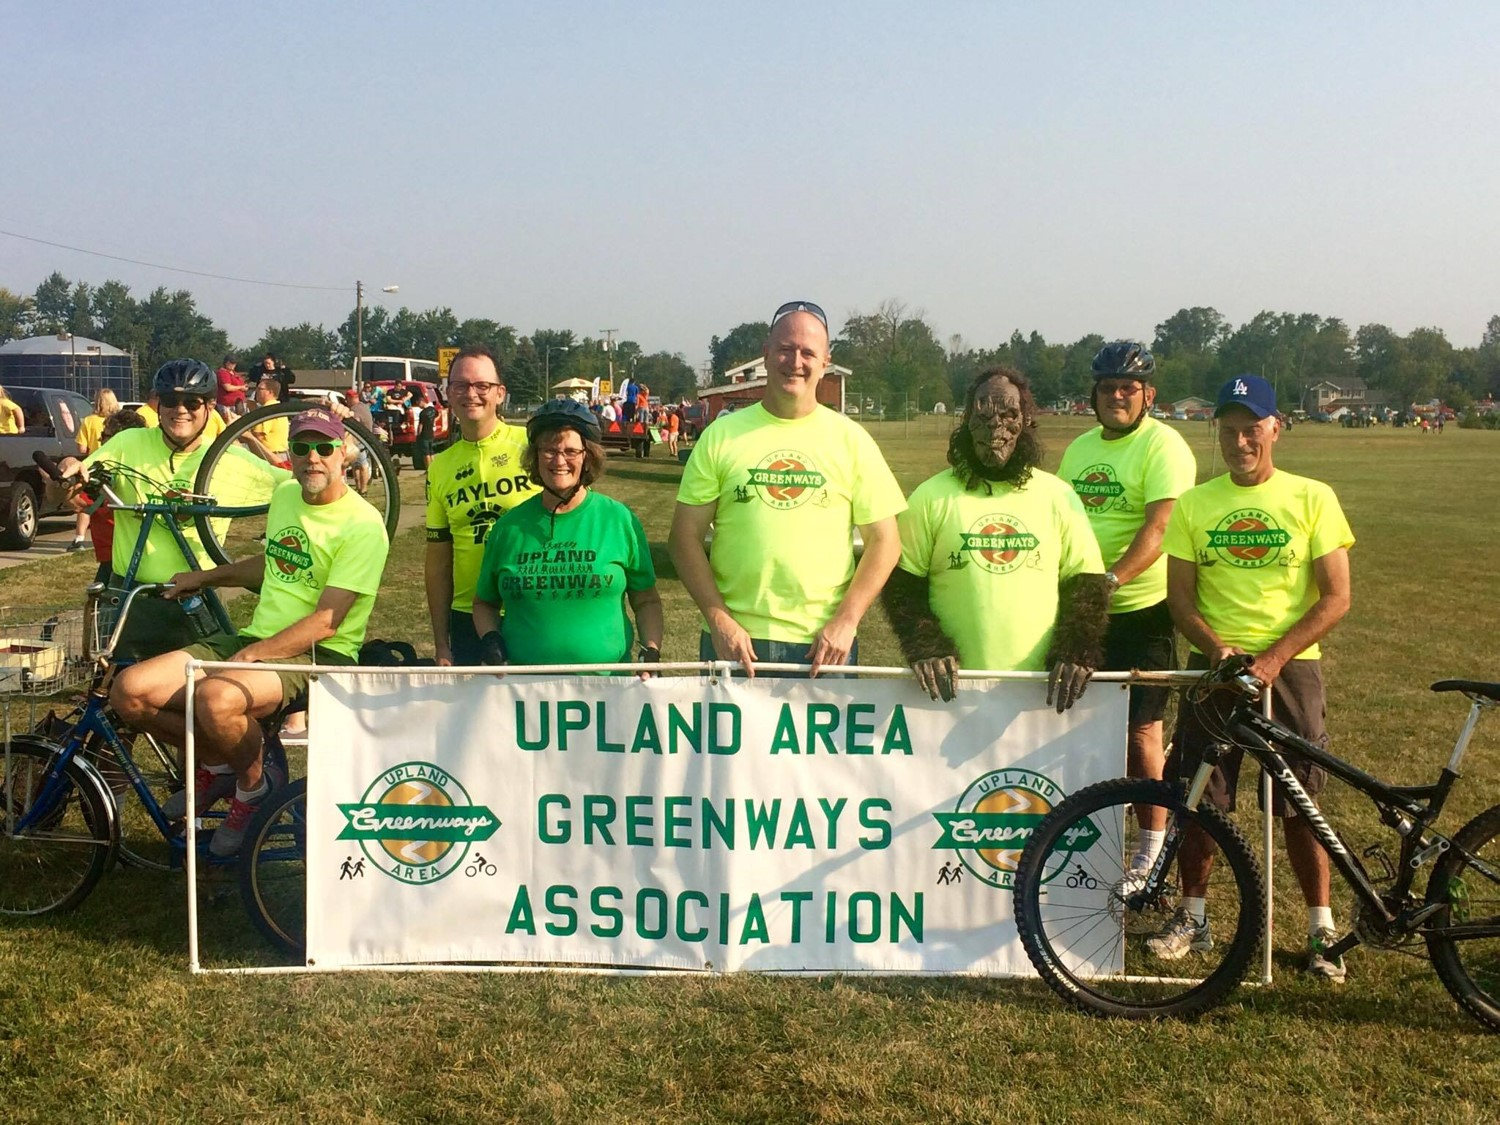 Members of the Upland Area Greenways Association